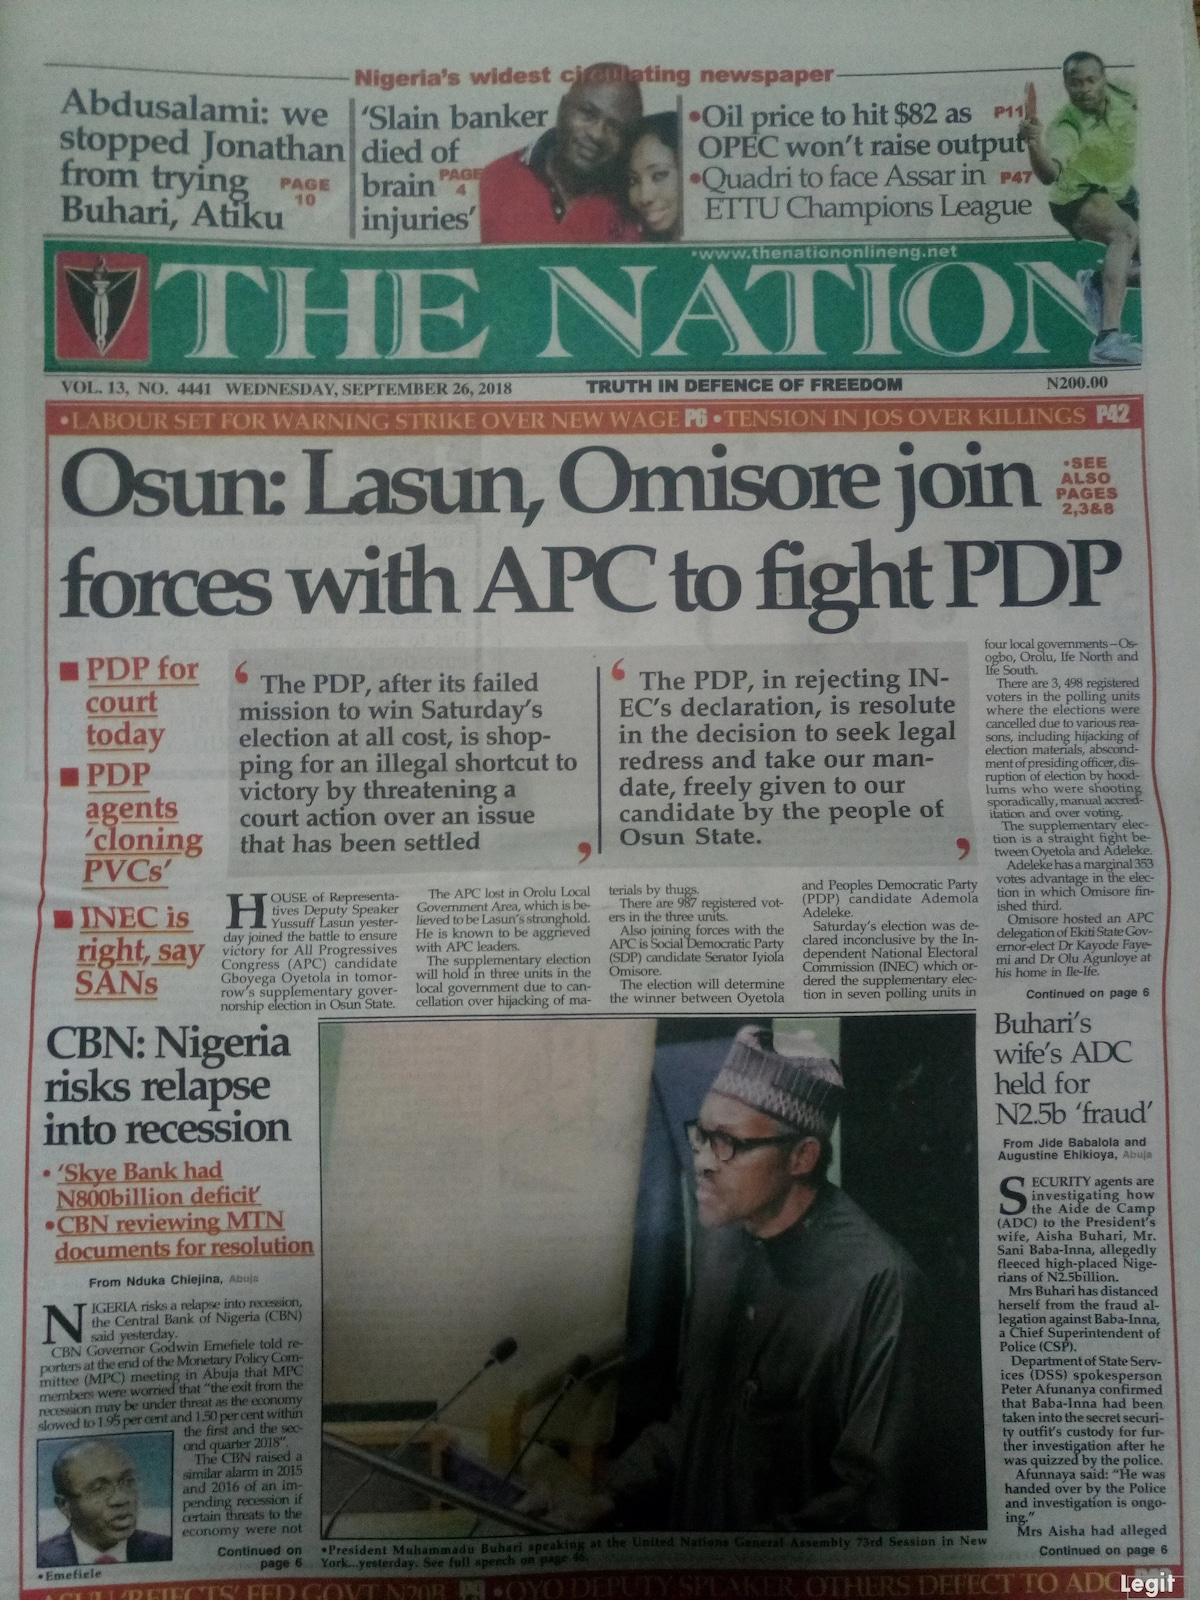 The Nation newspaper for Wednesday, September 26.Photo credit: Snapshot from Legit.ng.